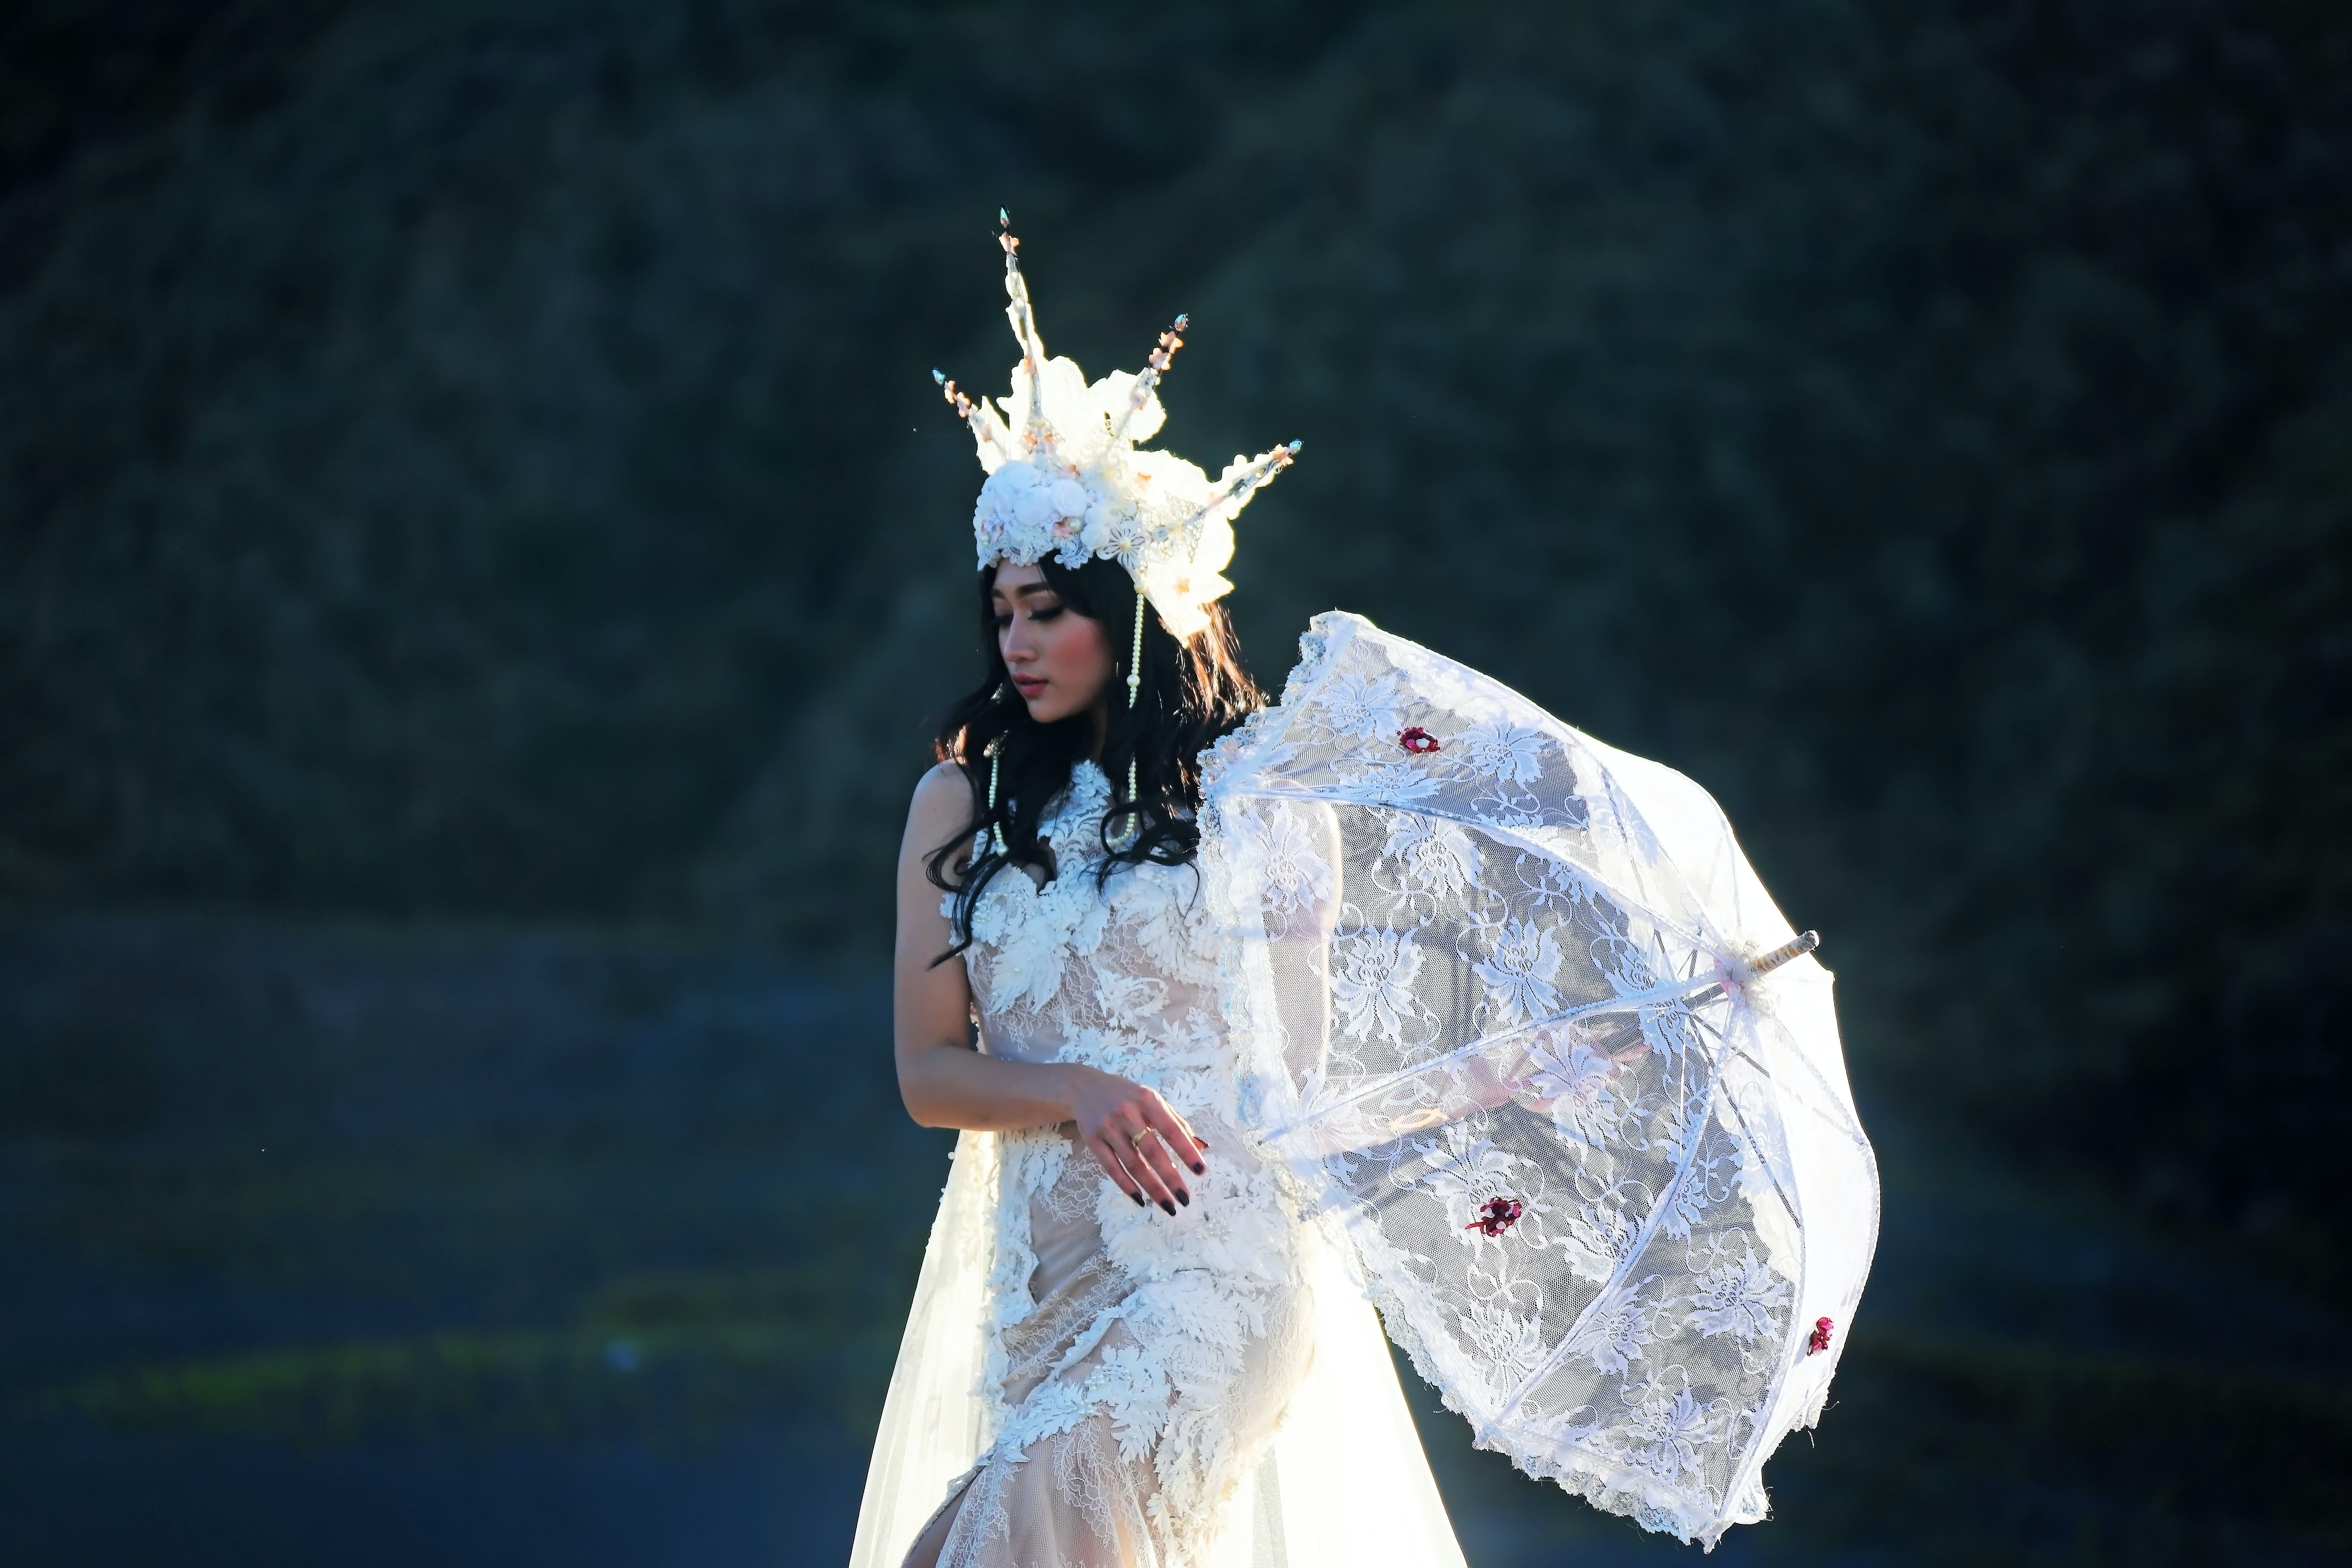 woman wearing white floral mesh gown with headdress and umbrella